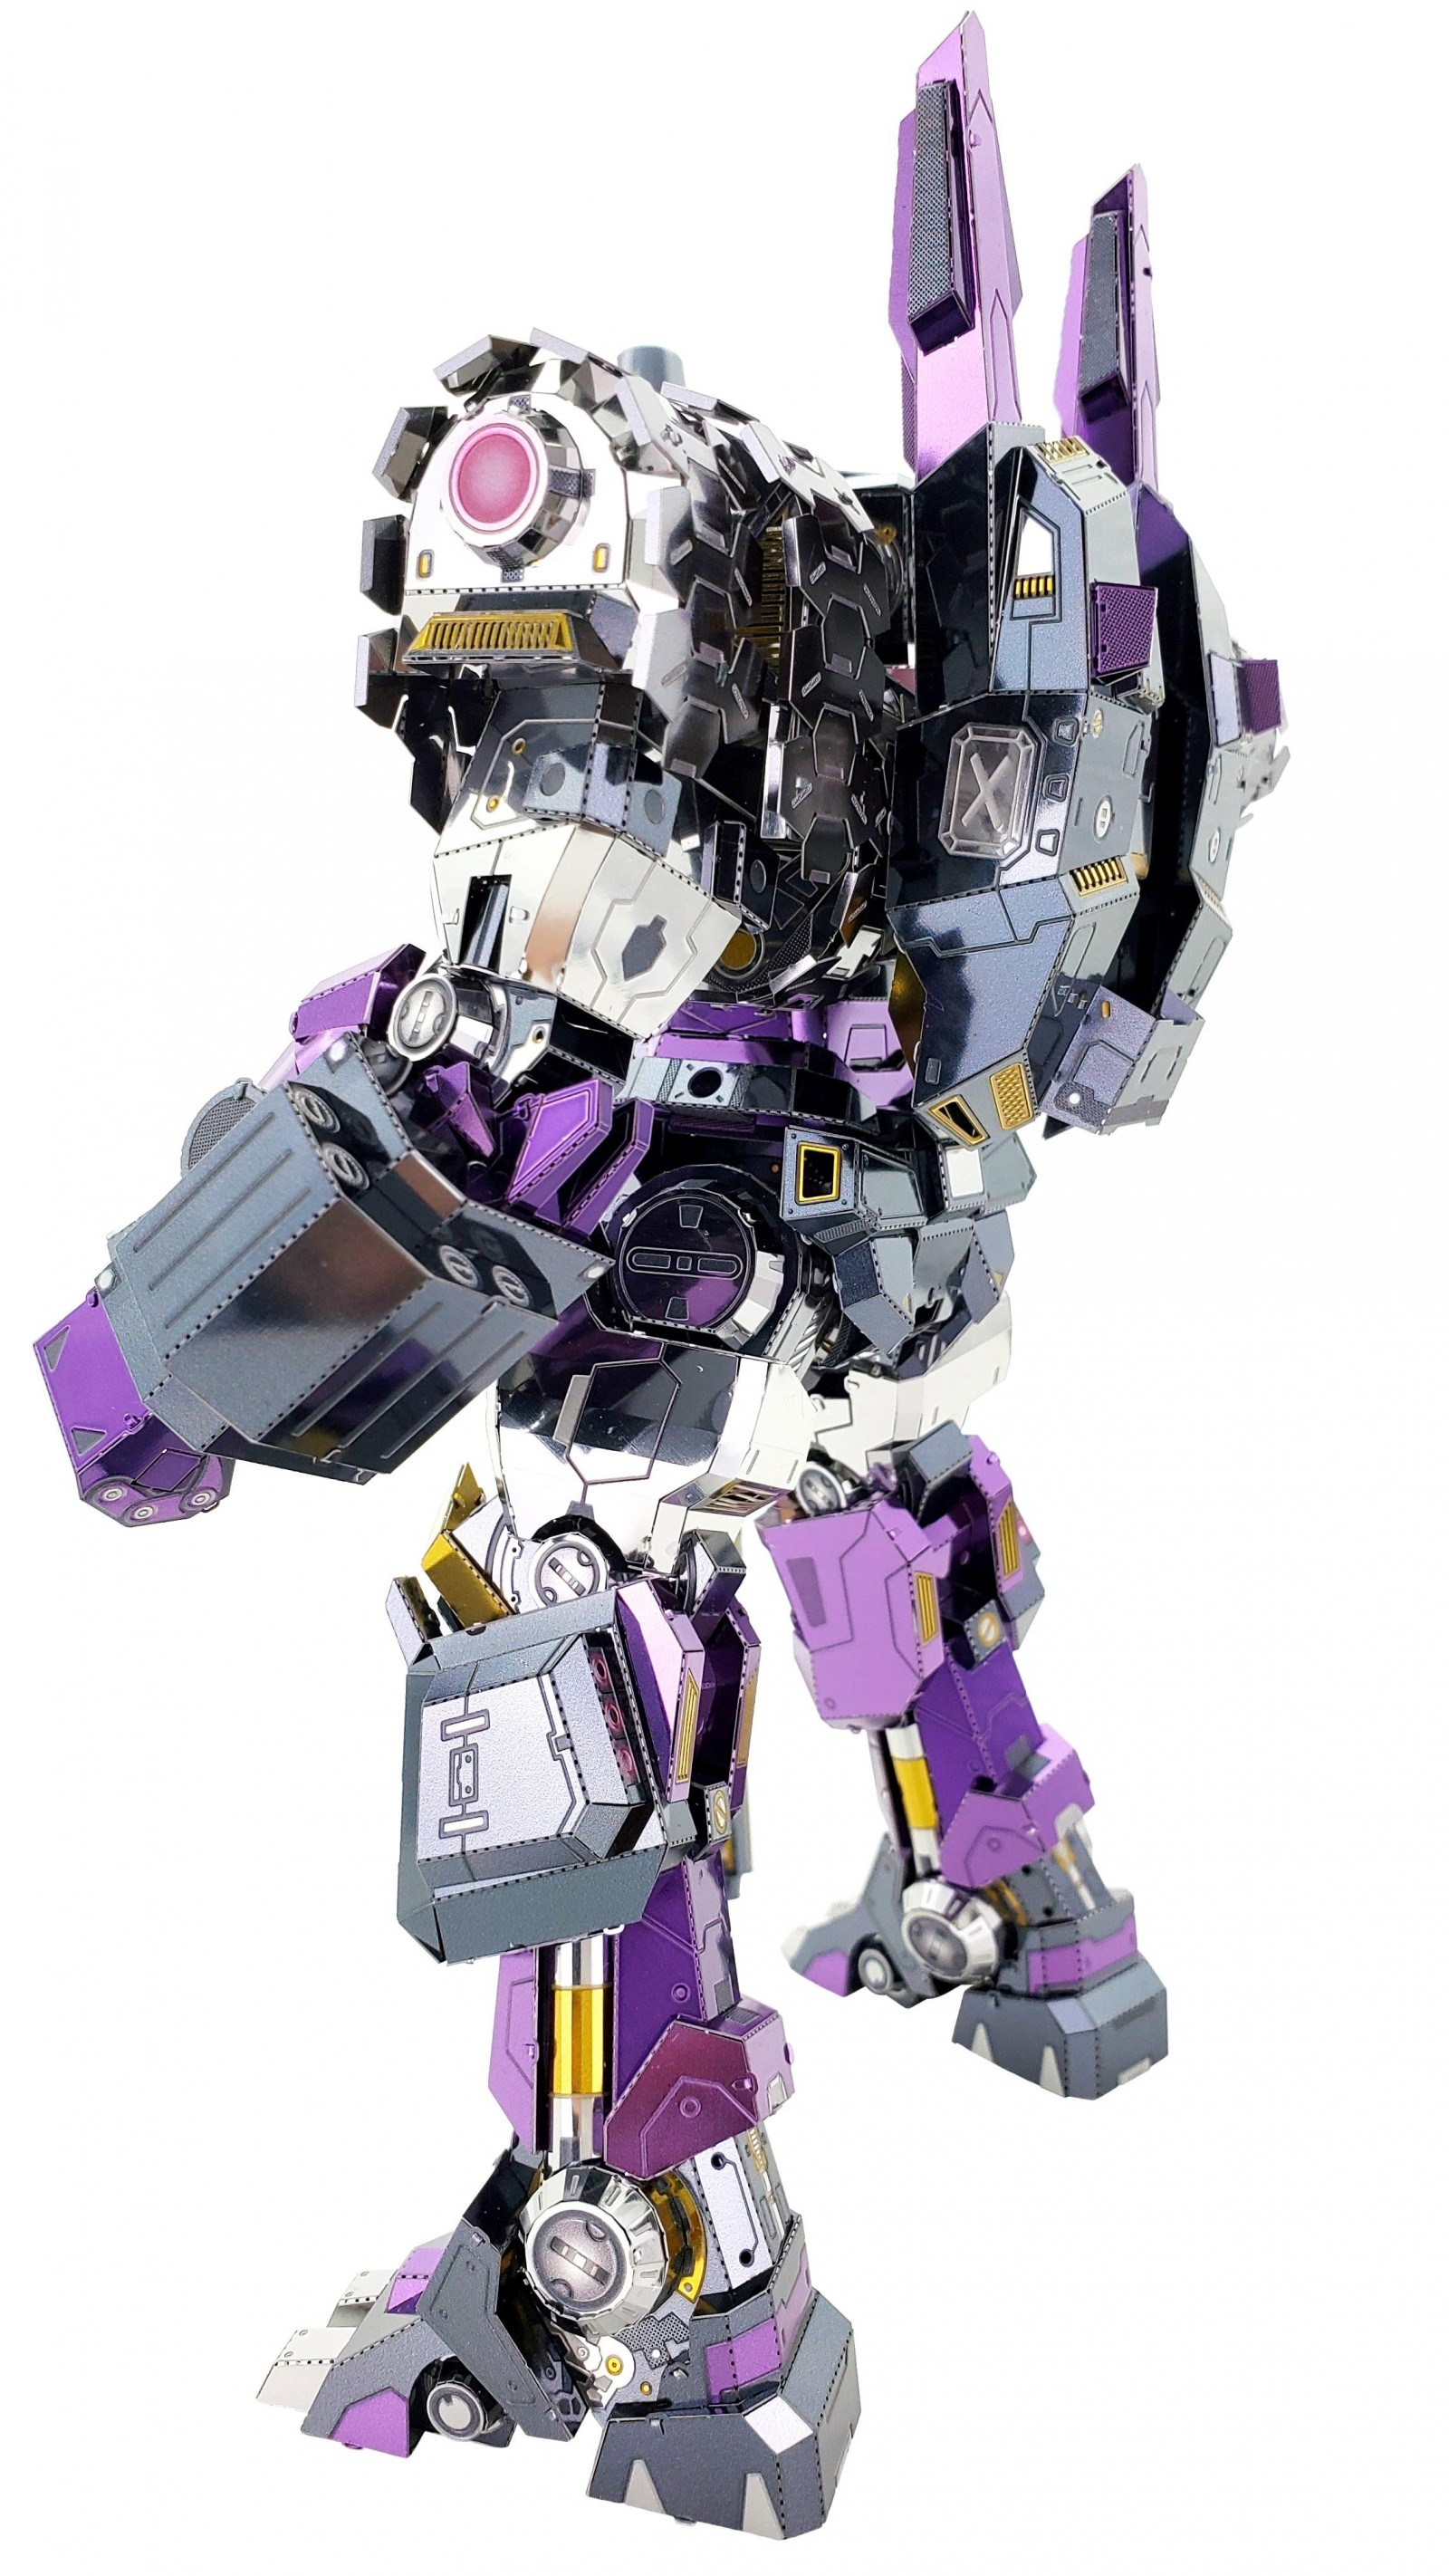 Transformers News: New Metal MU Model of Transformers IDW Tarn Leader of the Decepticon Justice Division